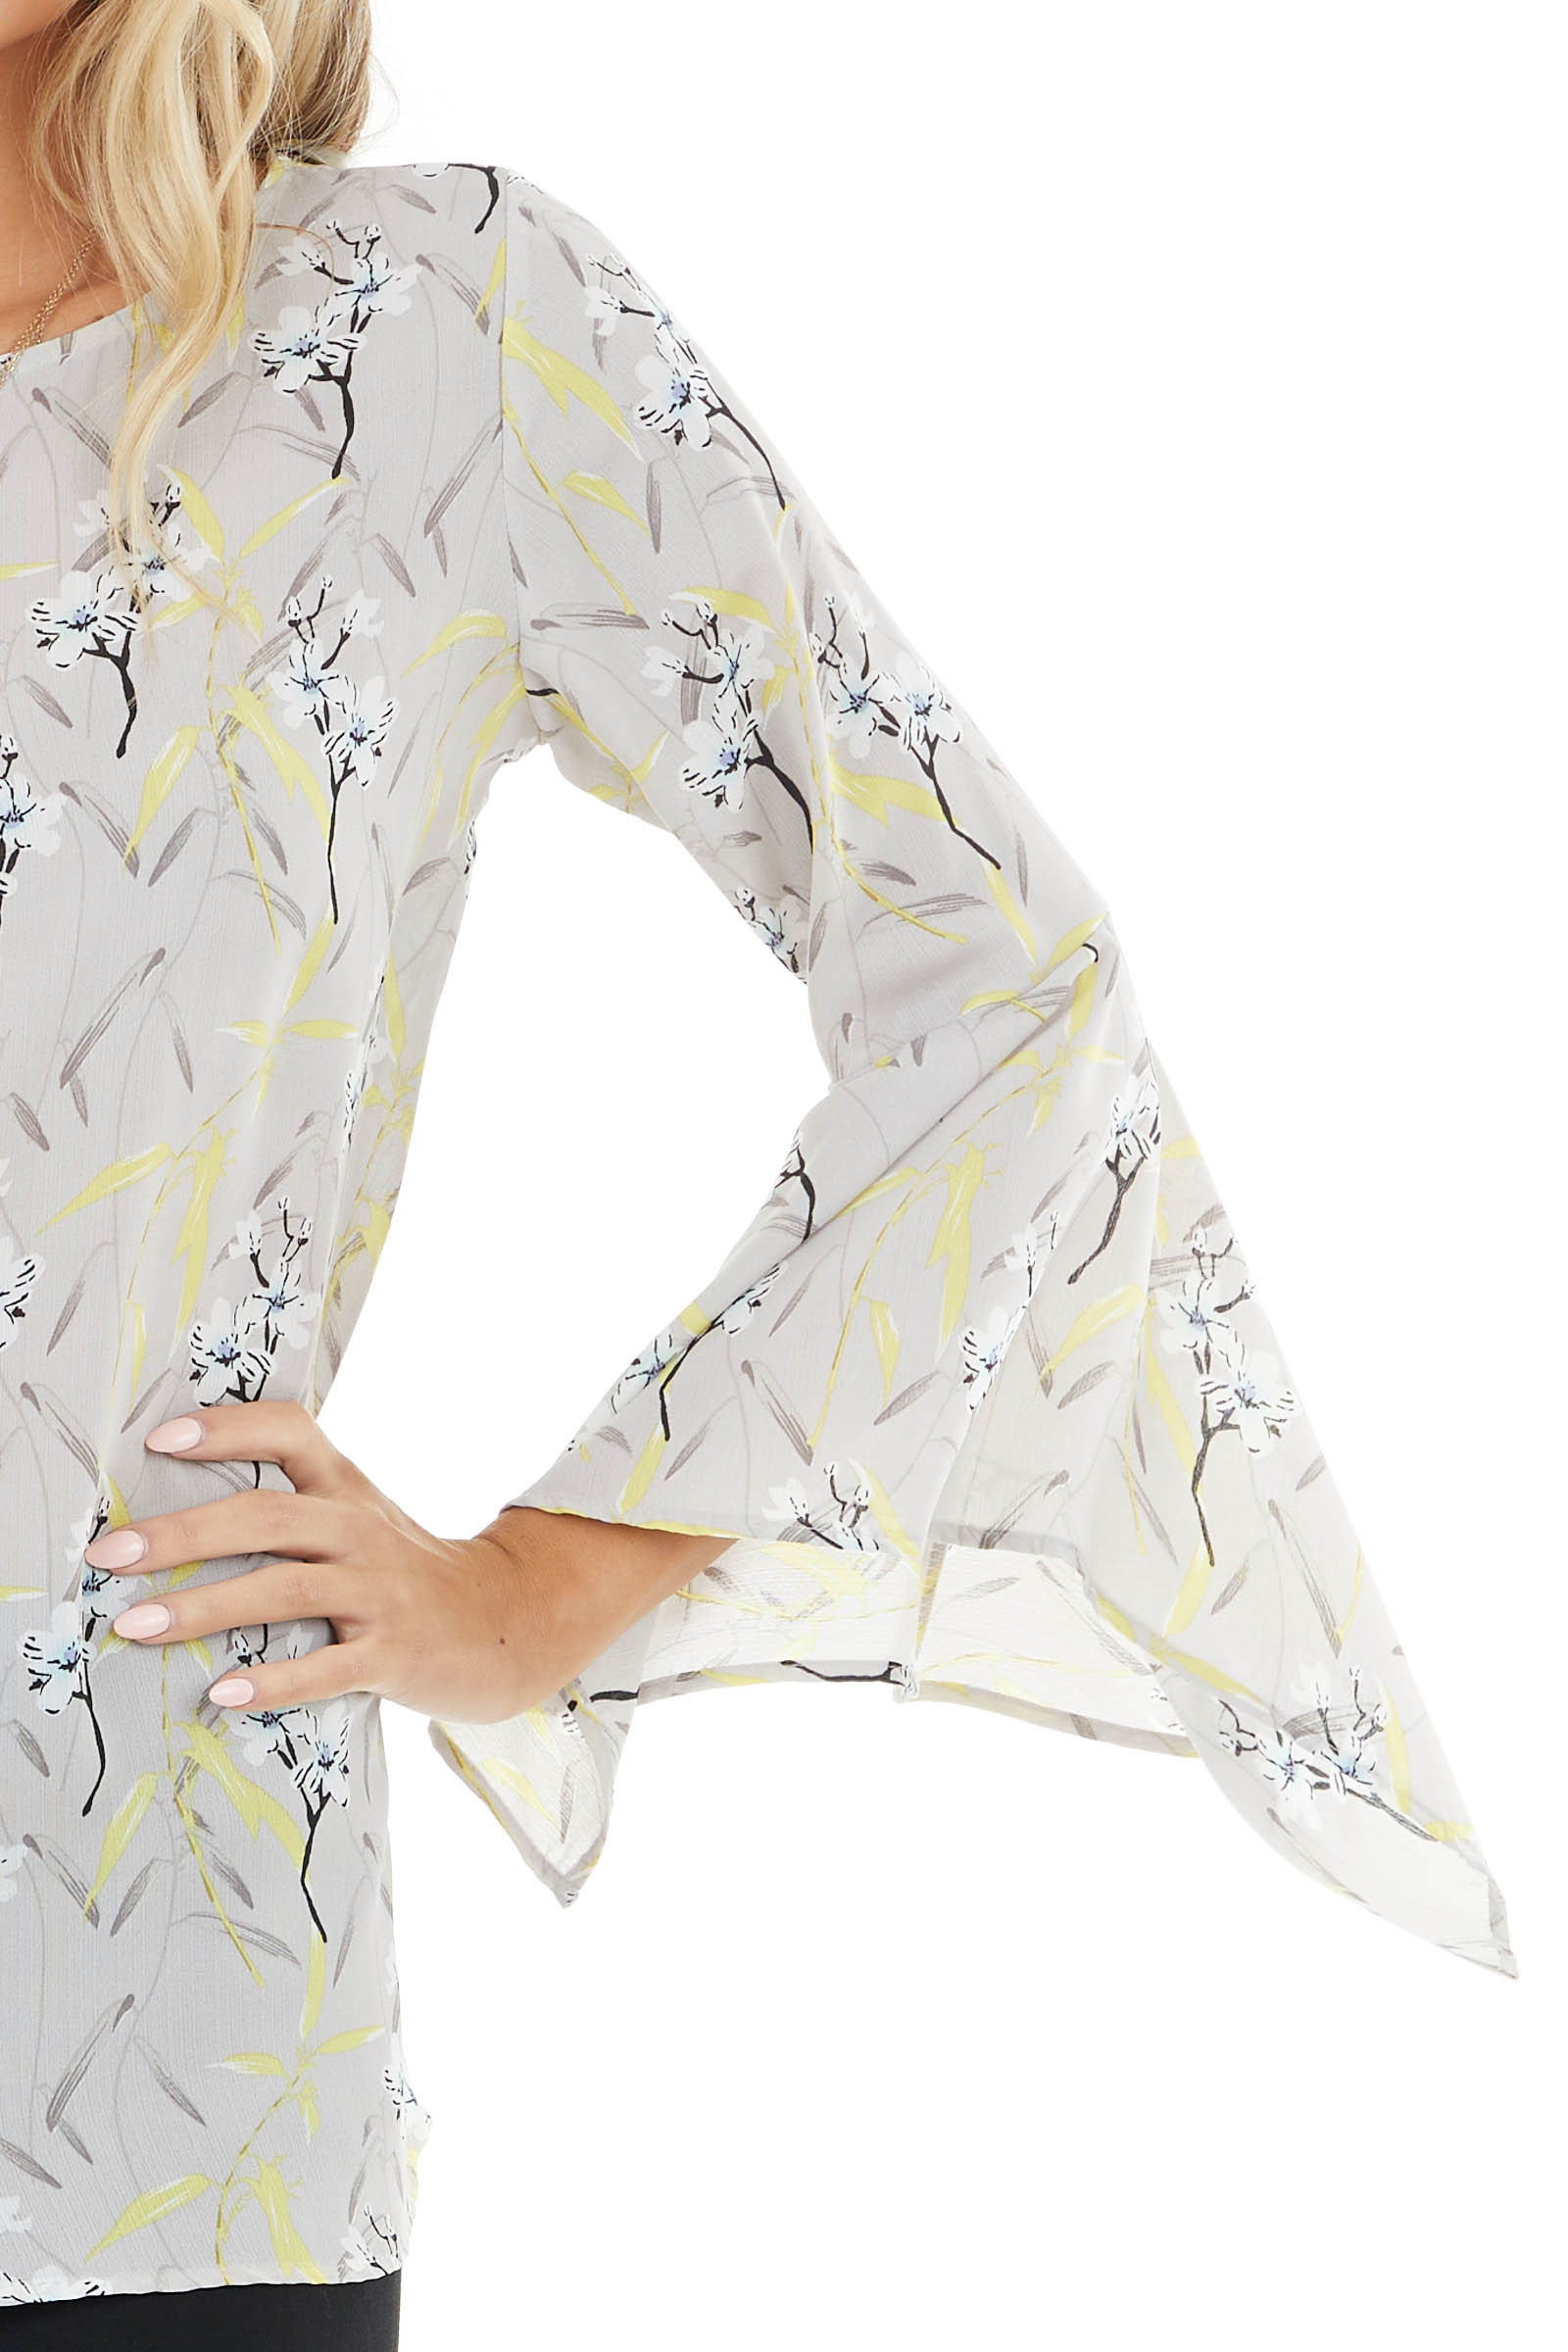 Dove Grey Floral Print Flare Sleeve Blouse with Back Cutout